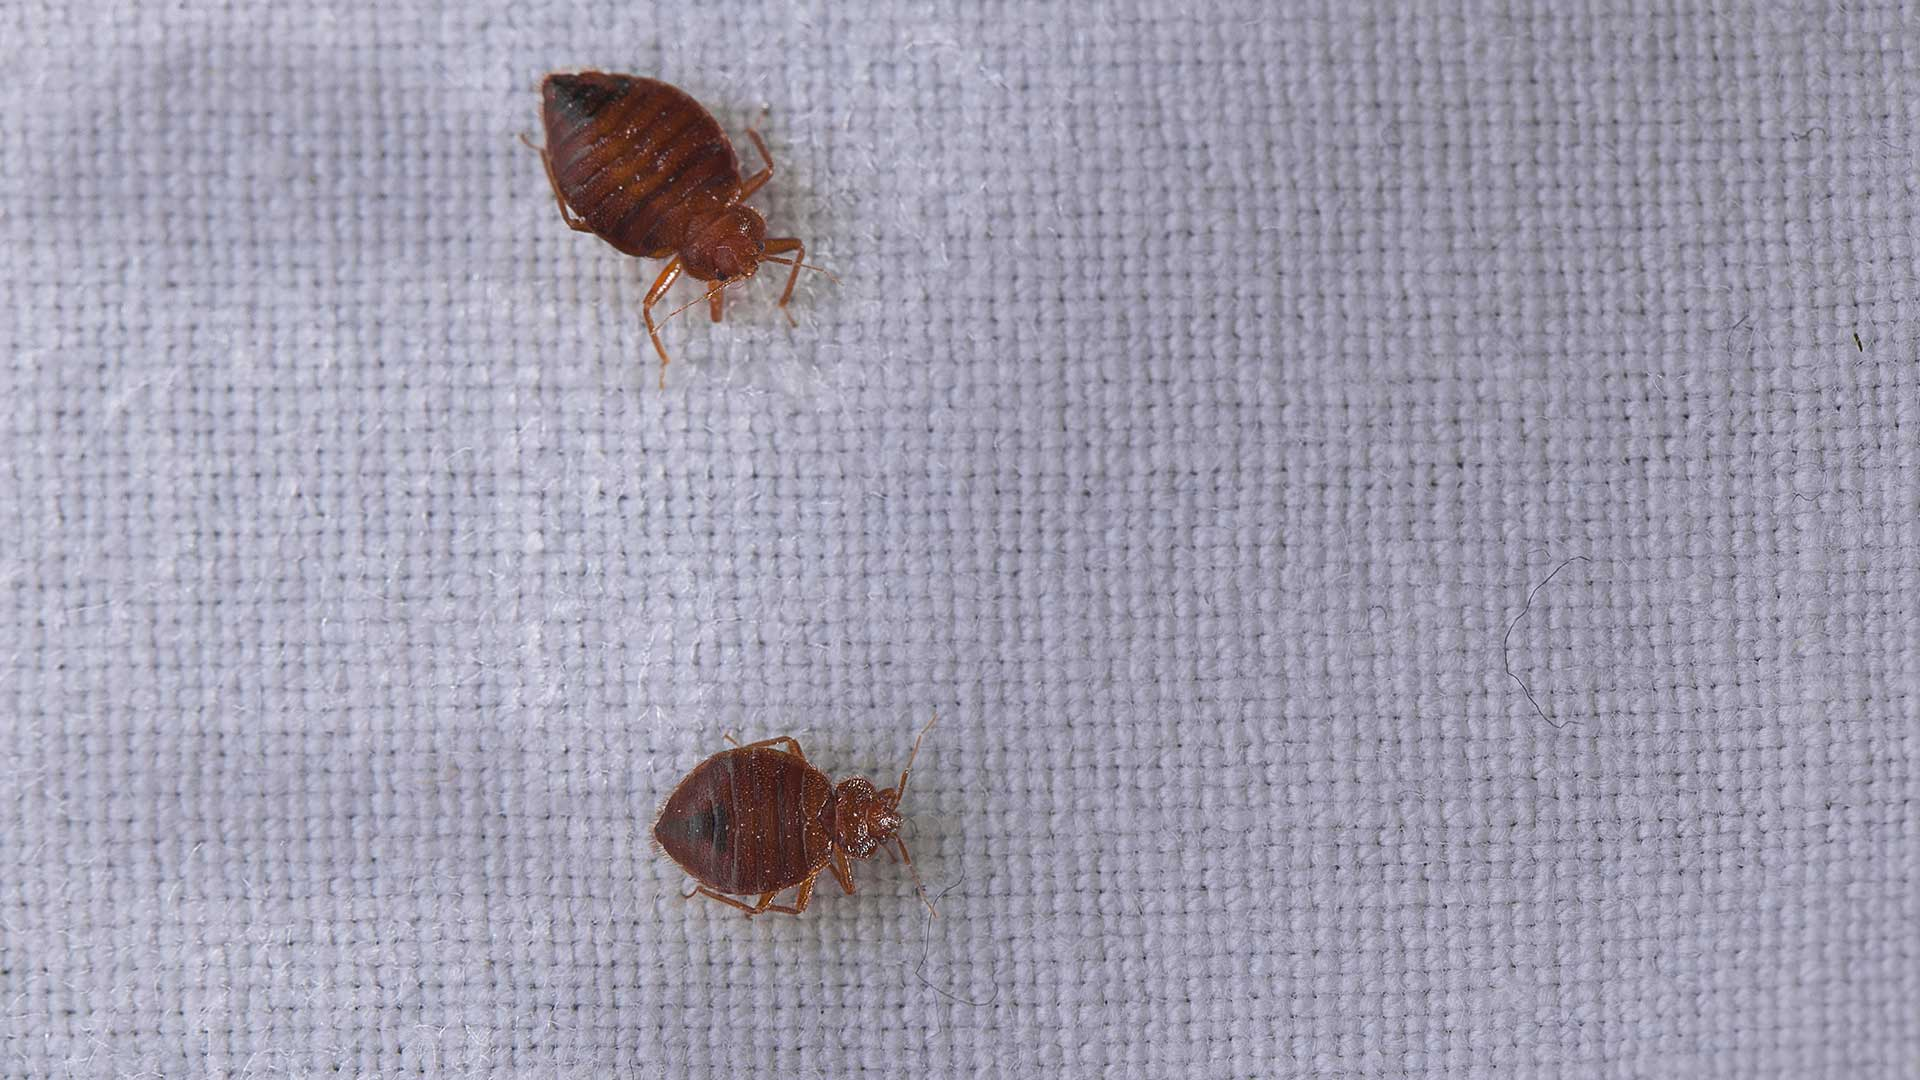 Liberty Termite & Pest Control - Bed Bugs